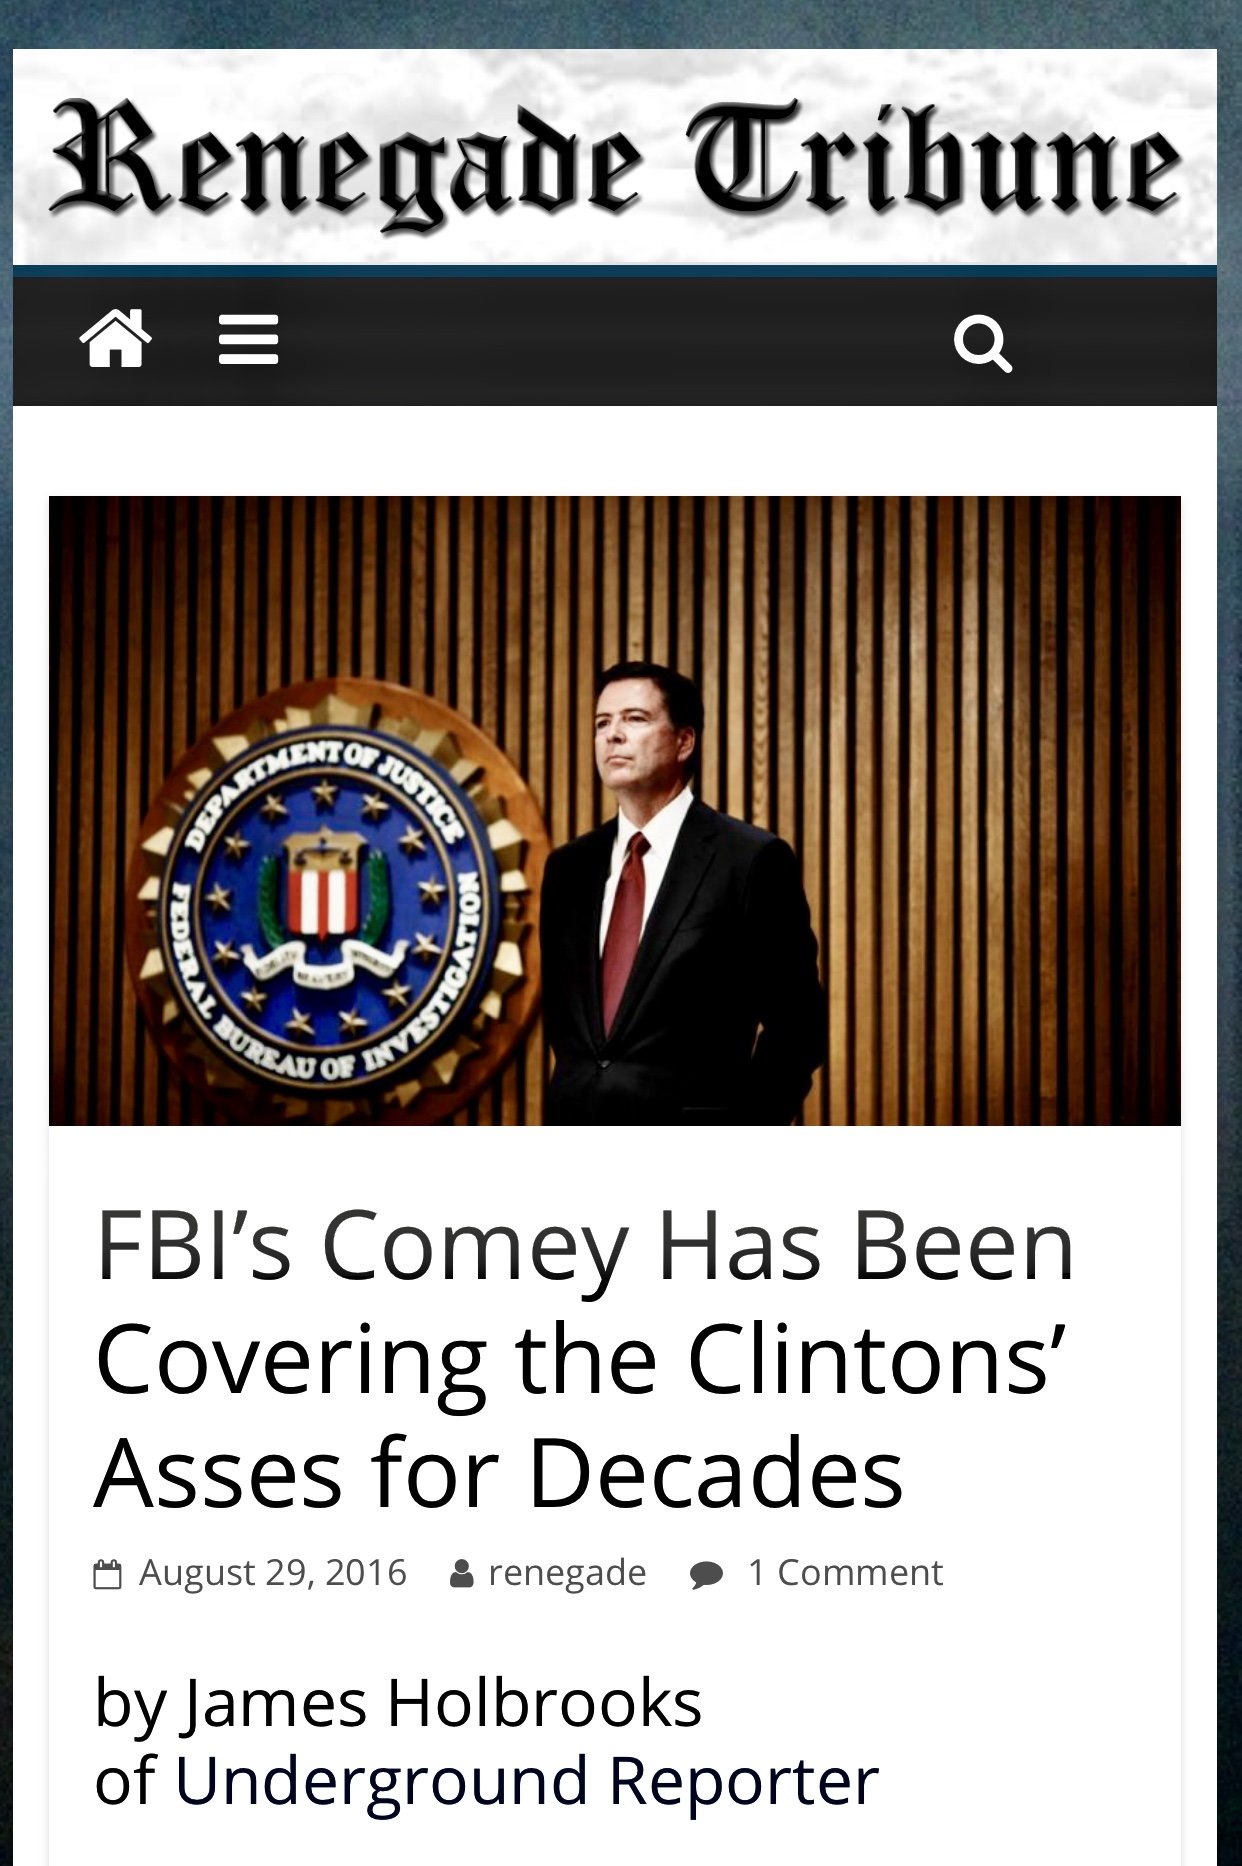 FBI's Comey Has Been Covering the Clintons' Asses for Decades